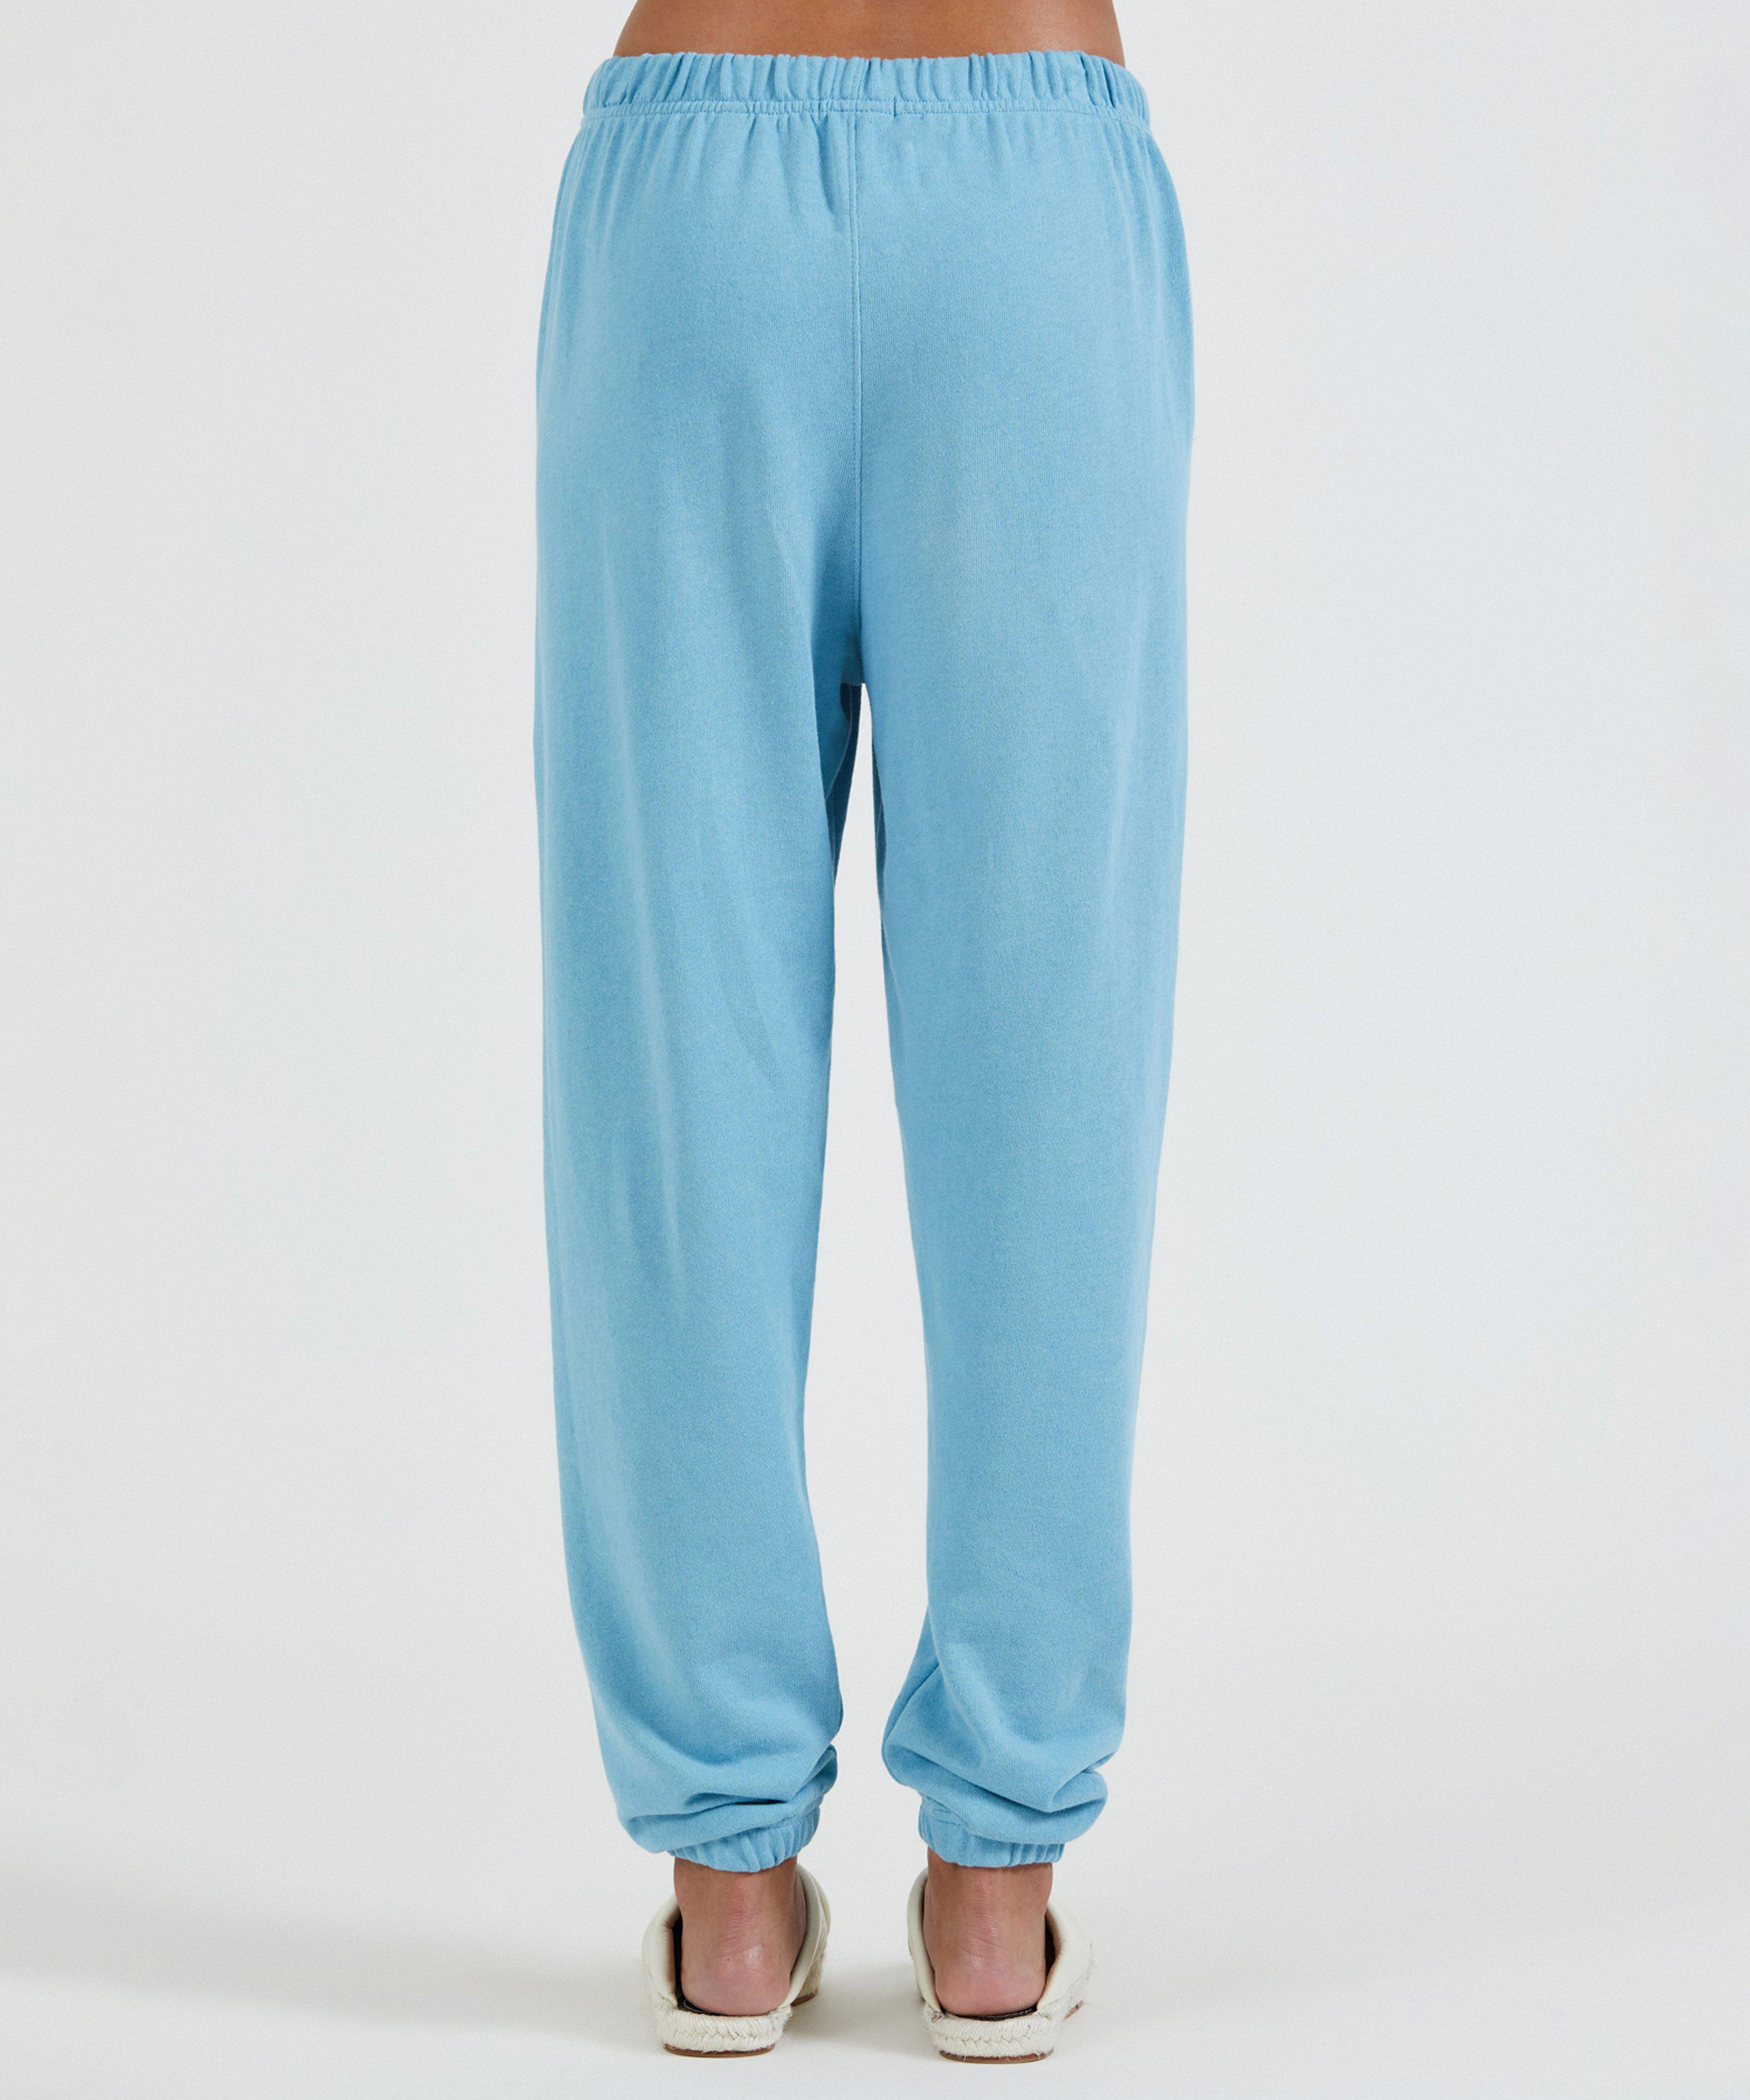 French Terry Pull-On Pant - Ocean Blue 3